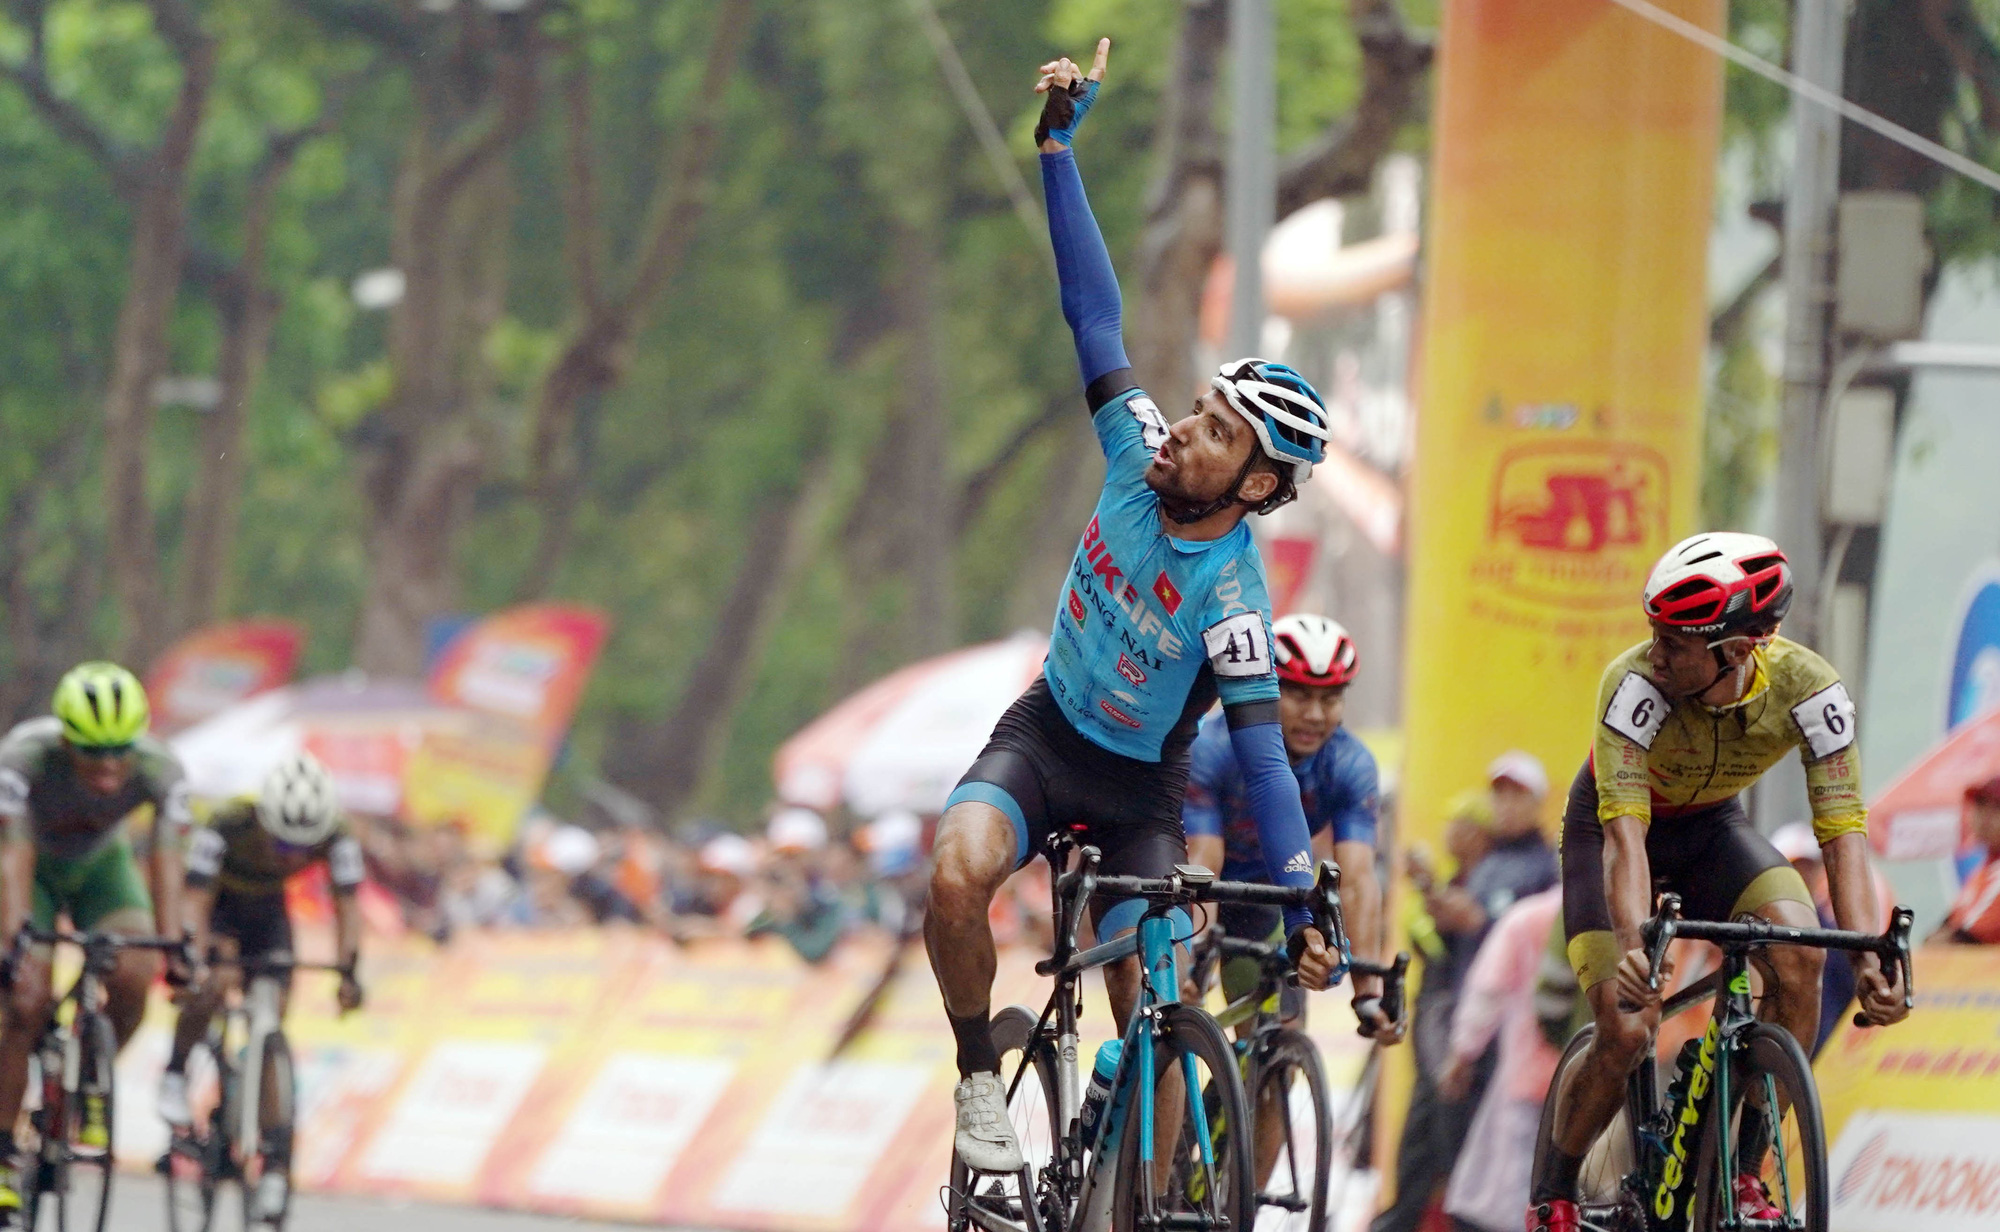 Former French men's U23 national team member shines in cycling race around Hanoi lake